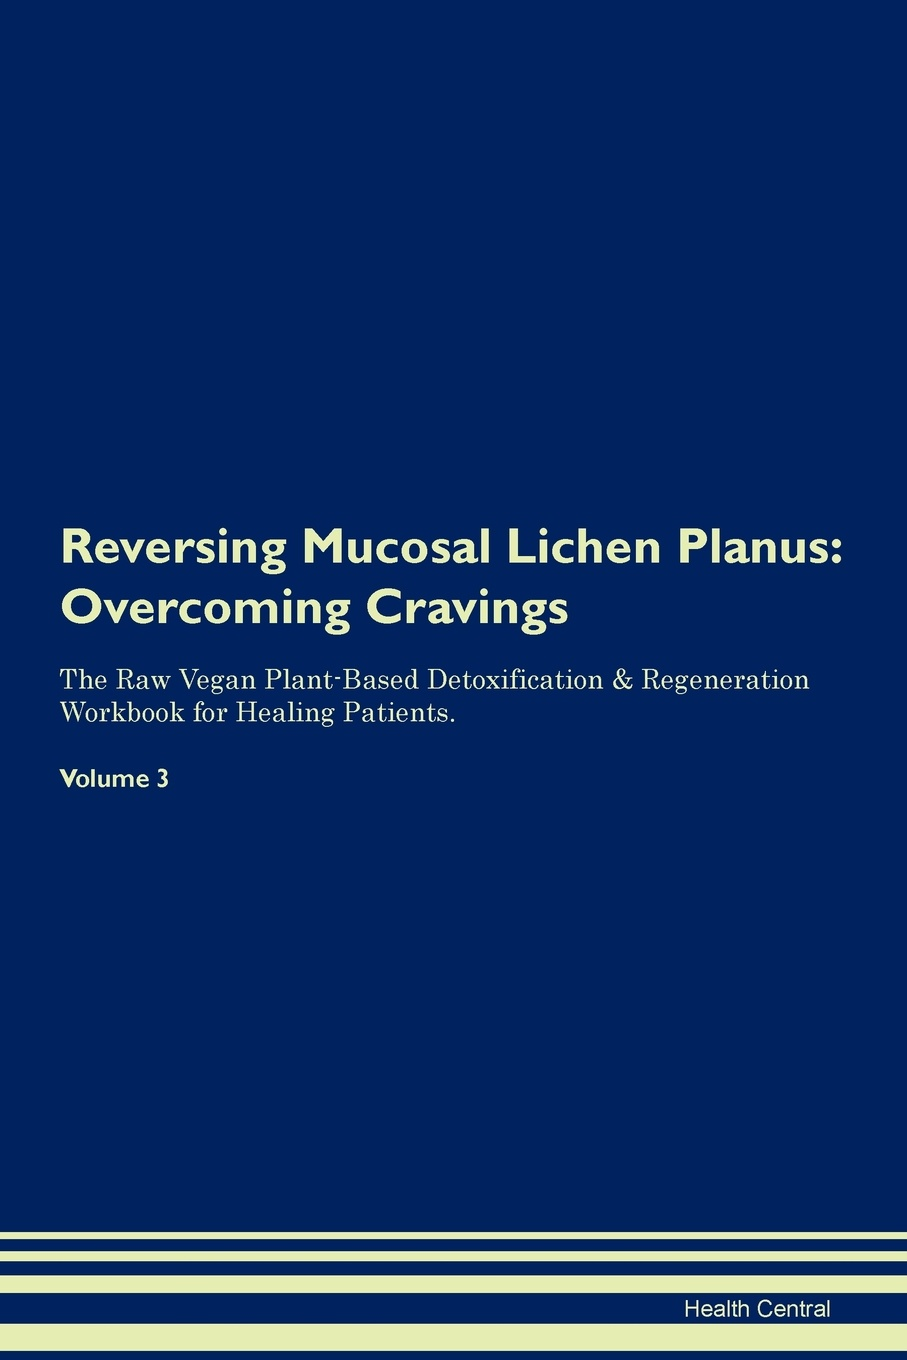 Фото - Health Central Reversing Mucosal Lichen Planus. Overcoming Cravings The Raw Vegan Plant-Based Detoxification & Regeneration Workbook for Healing Patients. Volume 3 health central reversing lichen sclerosus overcoming cravings the raw vegan plant based detoxification regeneration workbook for healing patients volume 3